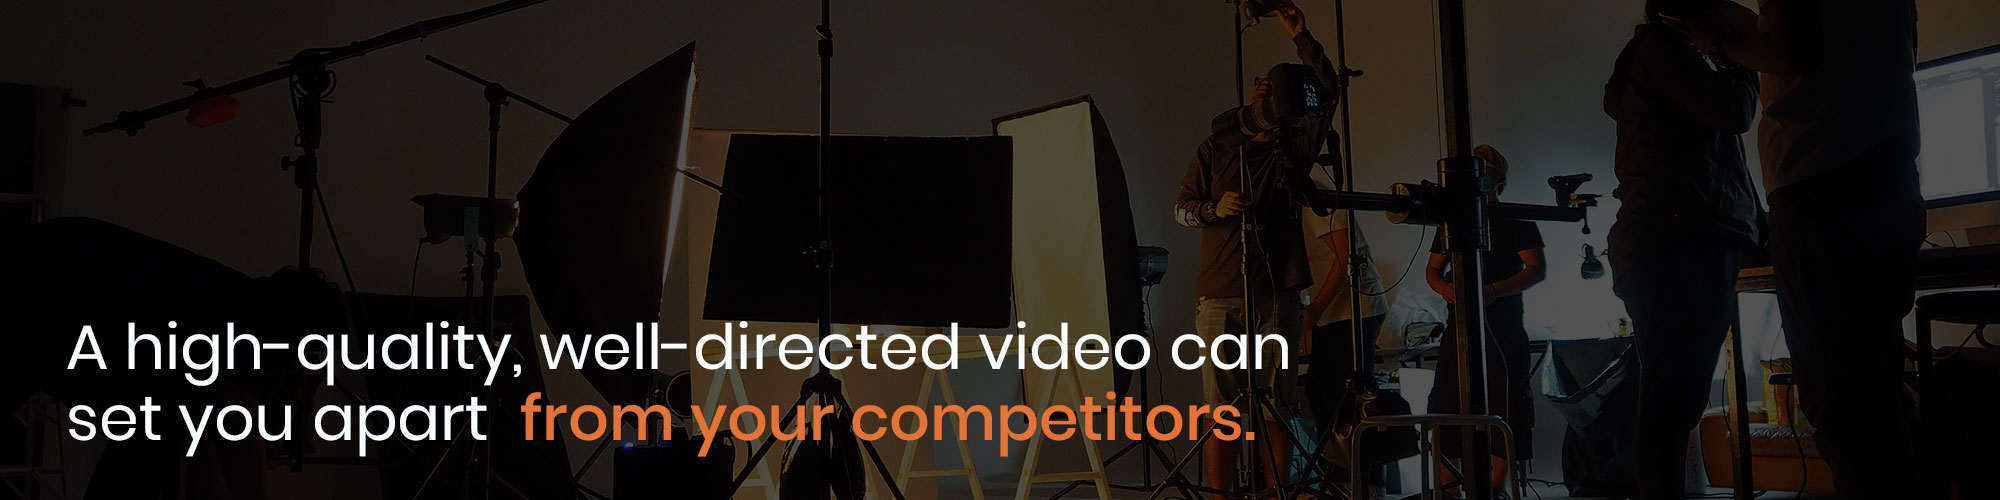 A high-quality, well-directed video can set your business apart from your competitors.